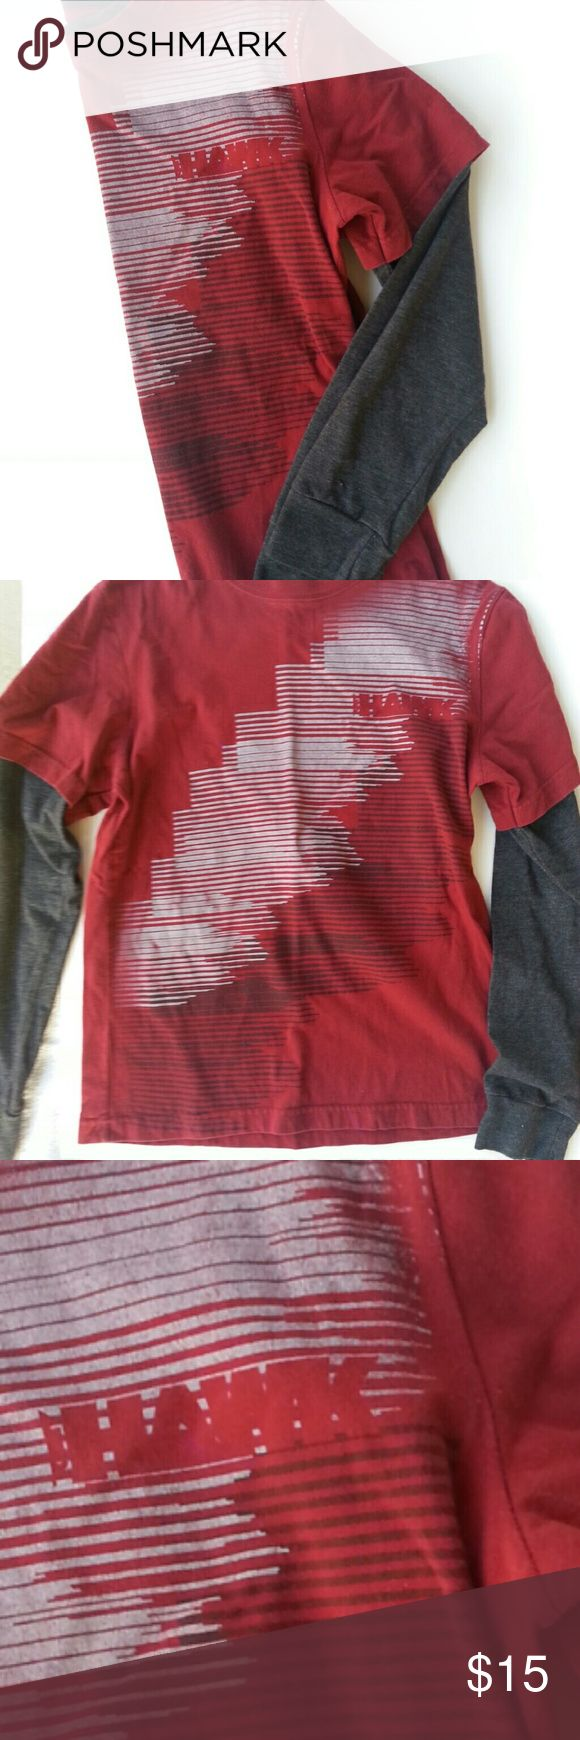 (Boys/Teens)Tony Hawk long sleeve layered tee Crimson red in color layered with gray sleeves. Size small but fits on the tighter side. Great with jeans, and shorts as well. Tony Hawk Shirts & Tops Tees - Long Sleeve